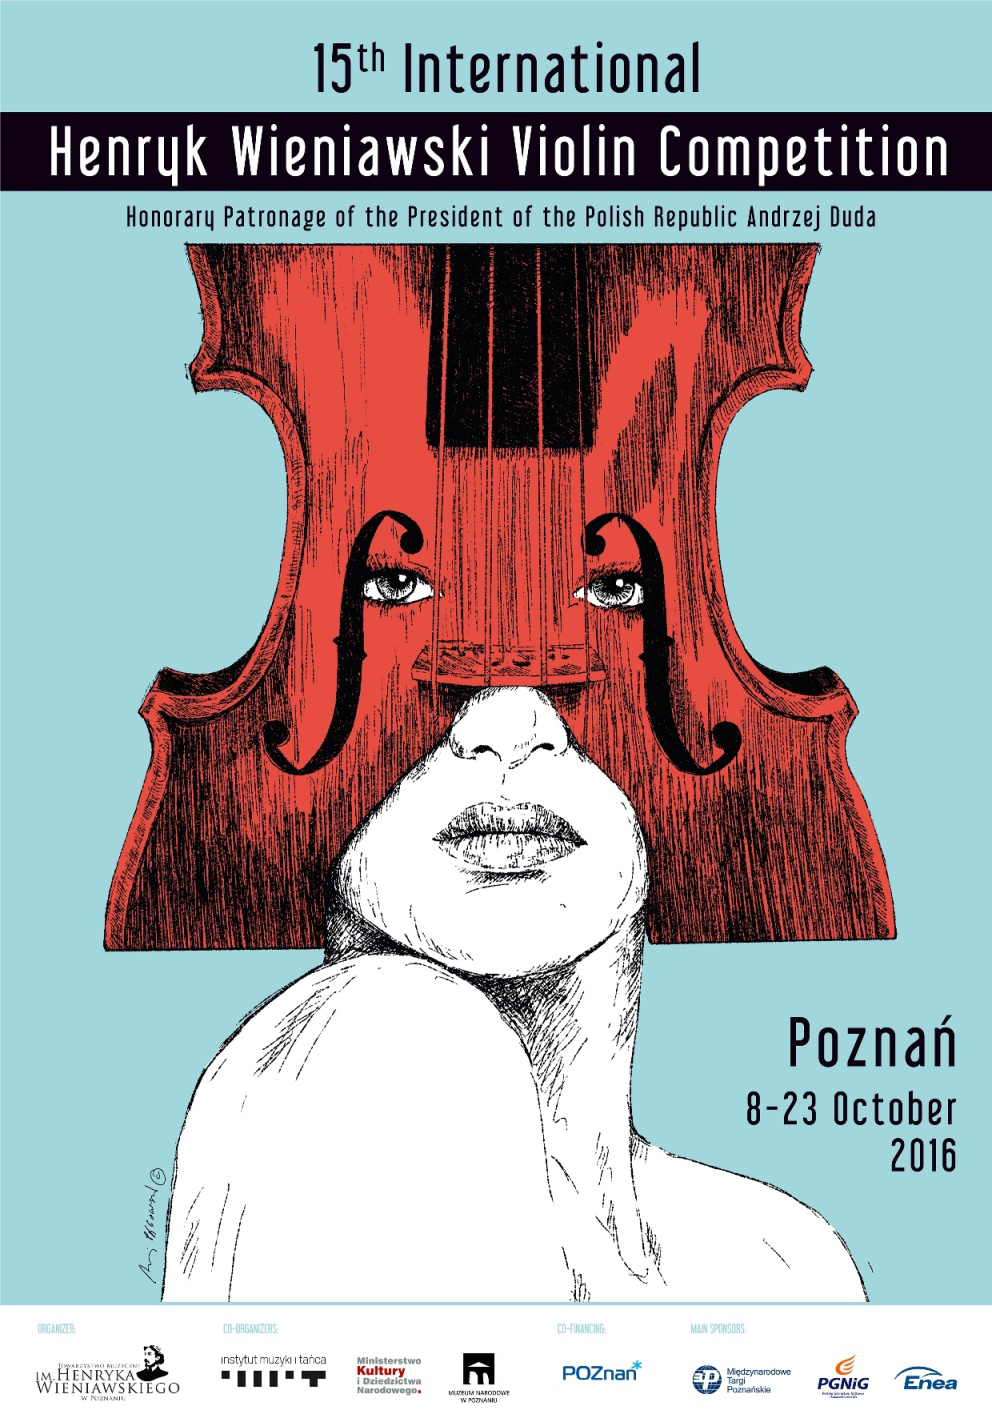 Jury of the 15th International Henryk Wieniawski Violin Competition (Poznań, 8-23.10.2016)